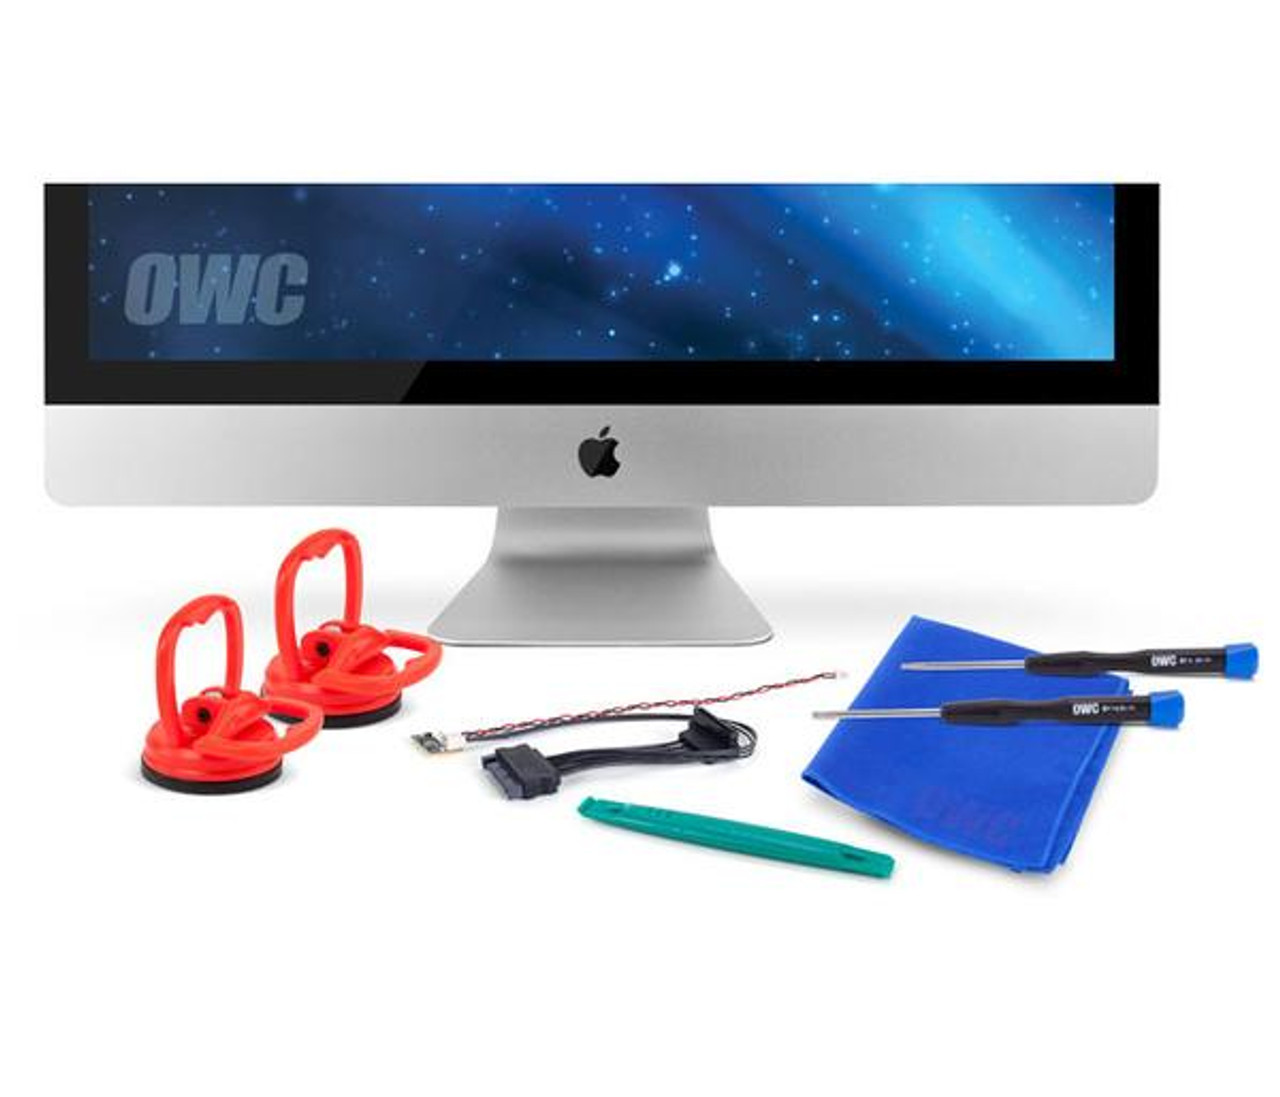 OWC Complete Hard Drive Upgrade Kit including tools and Digital Thermal Sensor for iMac late 2009-2010 Models